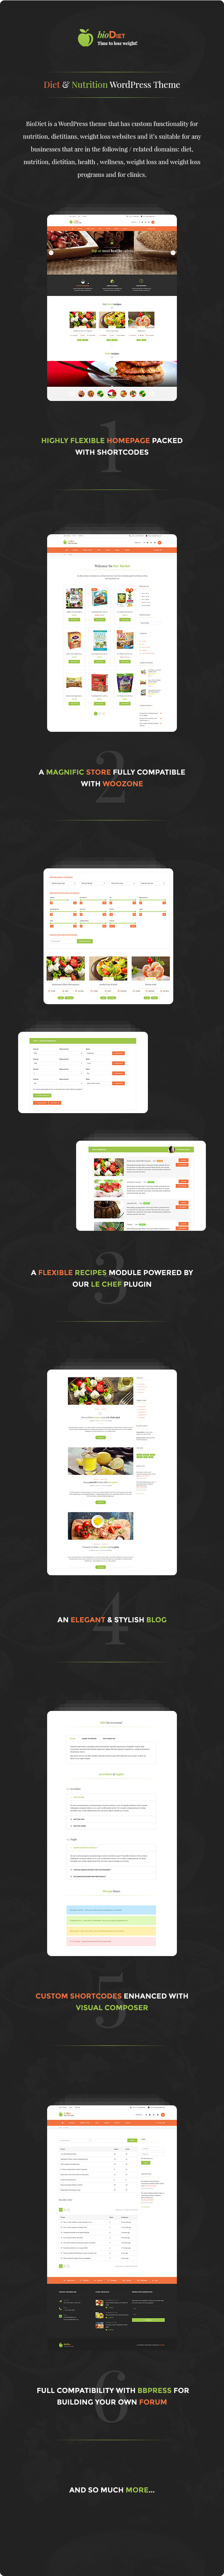 BioDiet - Nutrition & Weight Loss WordPress Theme - 2 BioDiet - Nutrition & Weight Loss WordPress Theme - biodiet - BioDiet – Nutrition & Weight Loss WordPress Theme